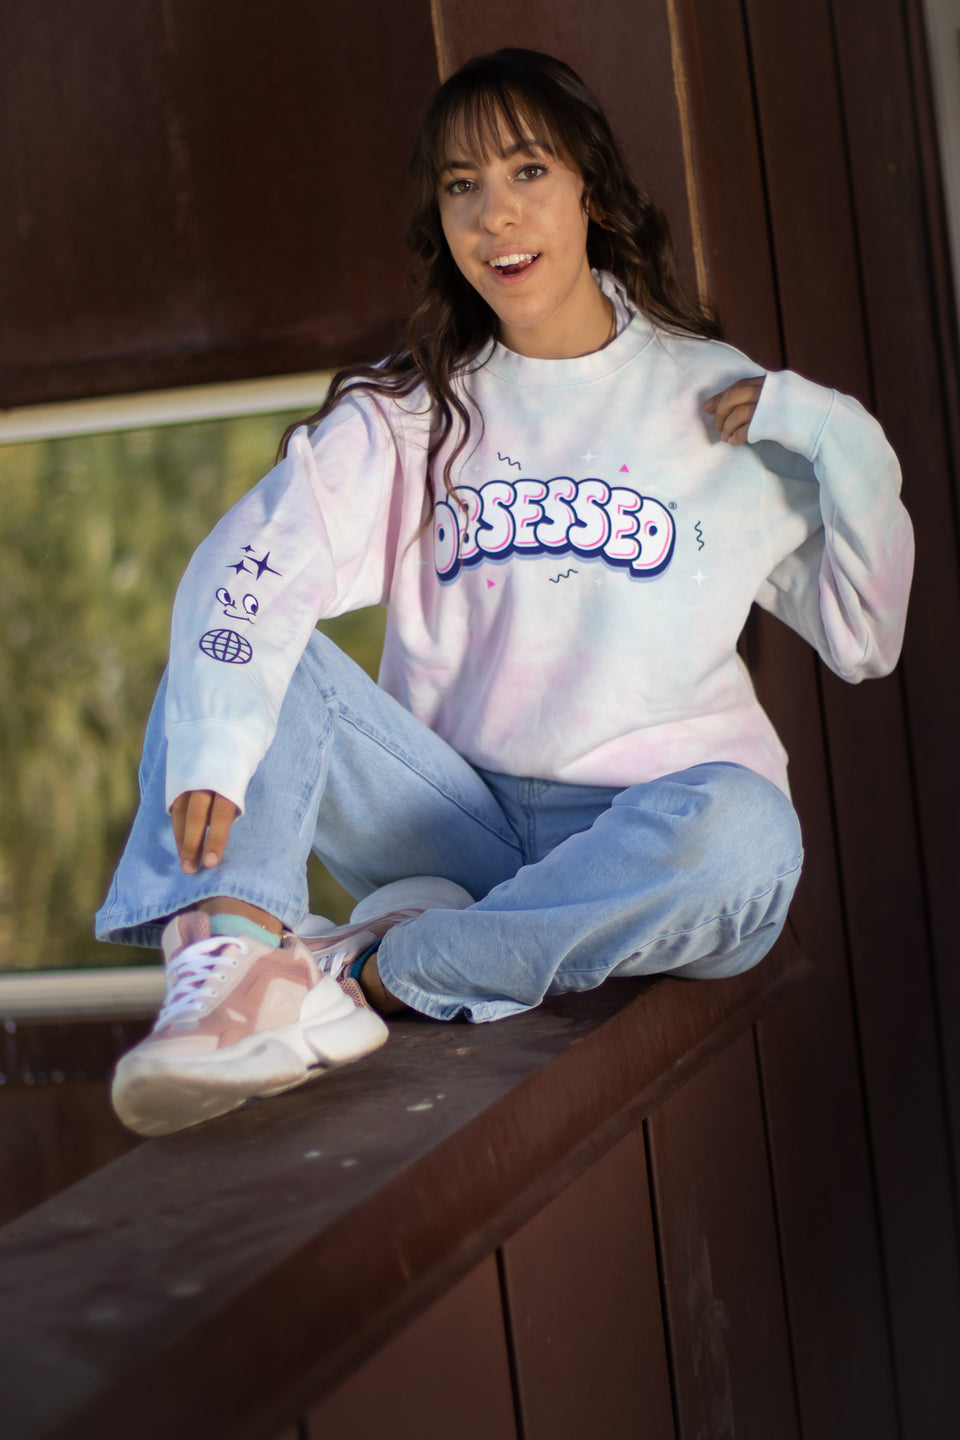 Obsessed Sweatshirt